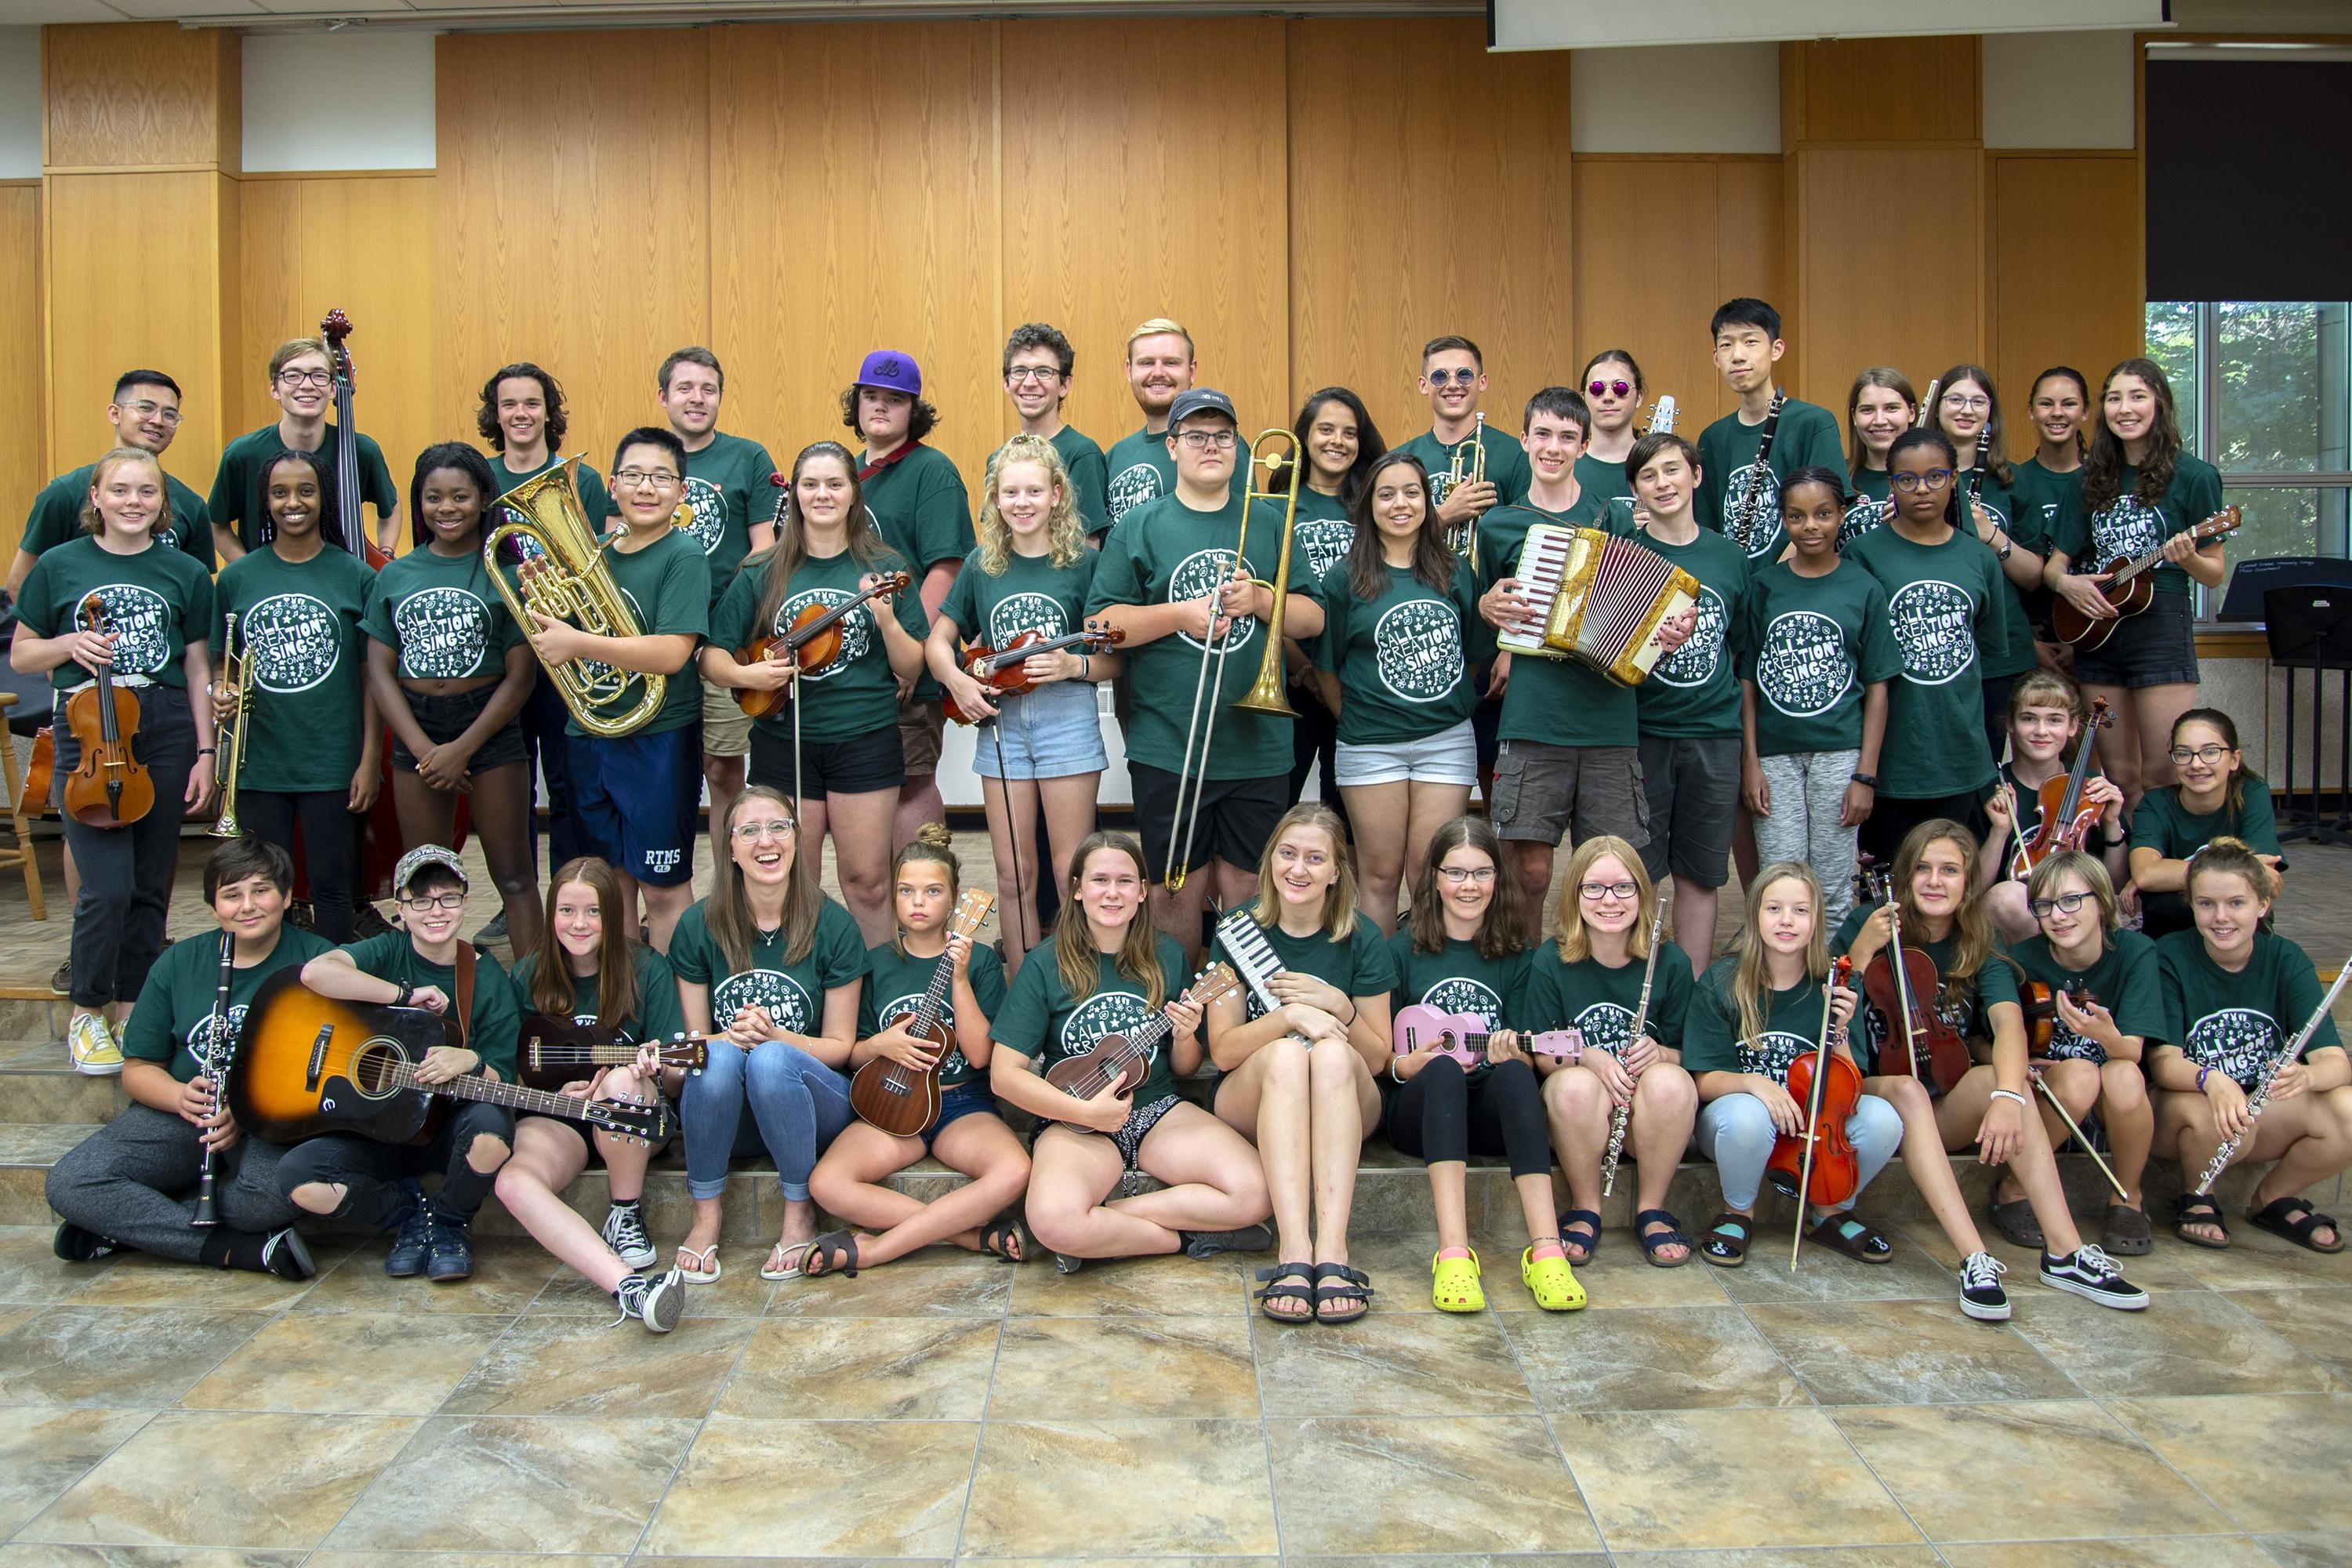 OMMC 2020 - All camp photo